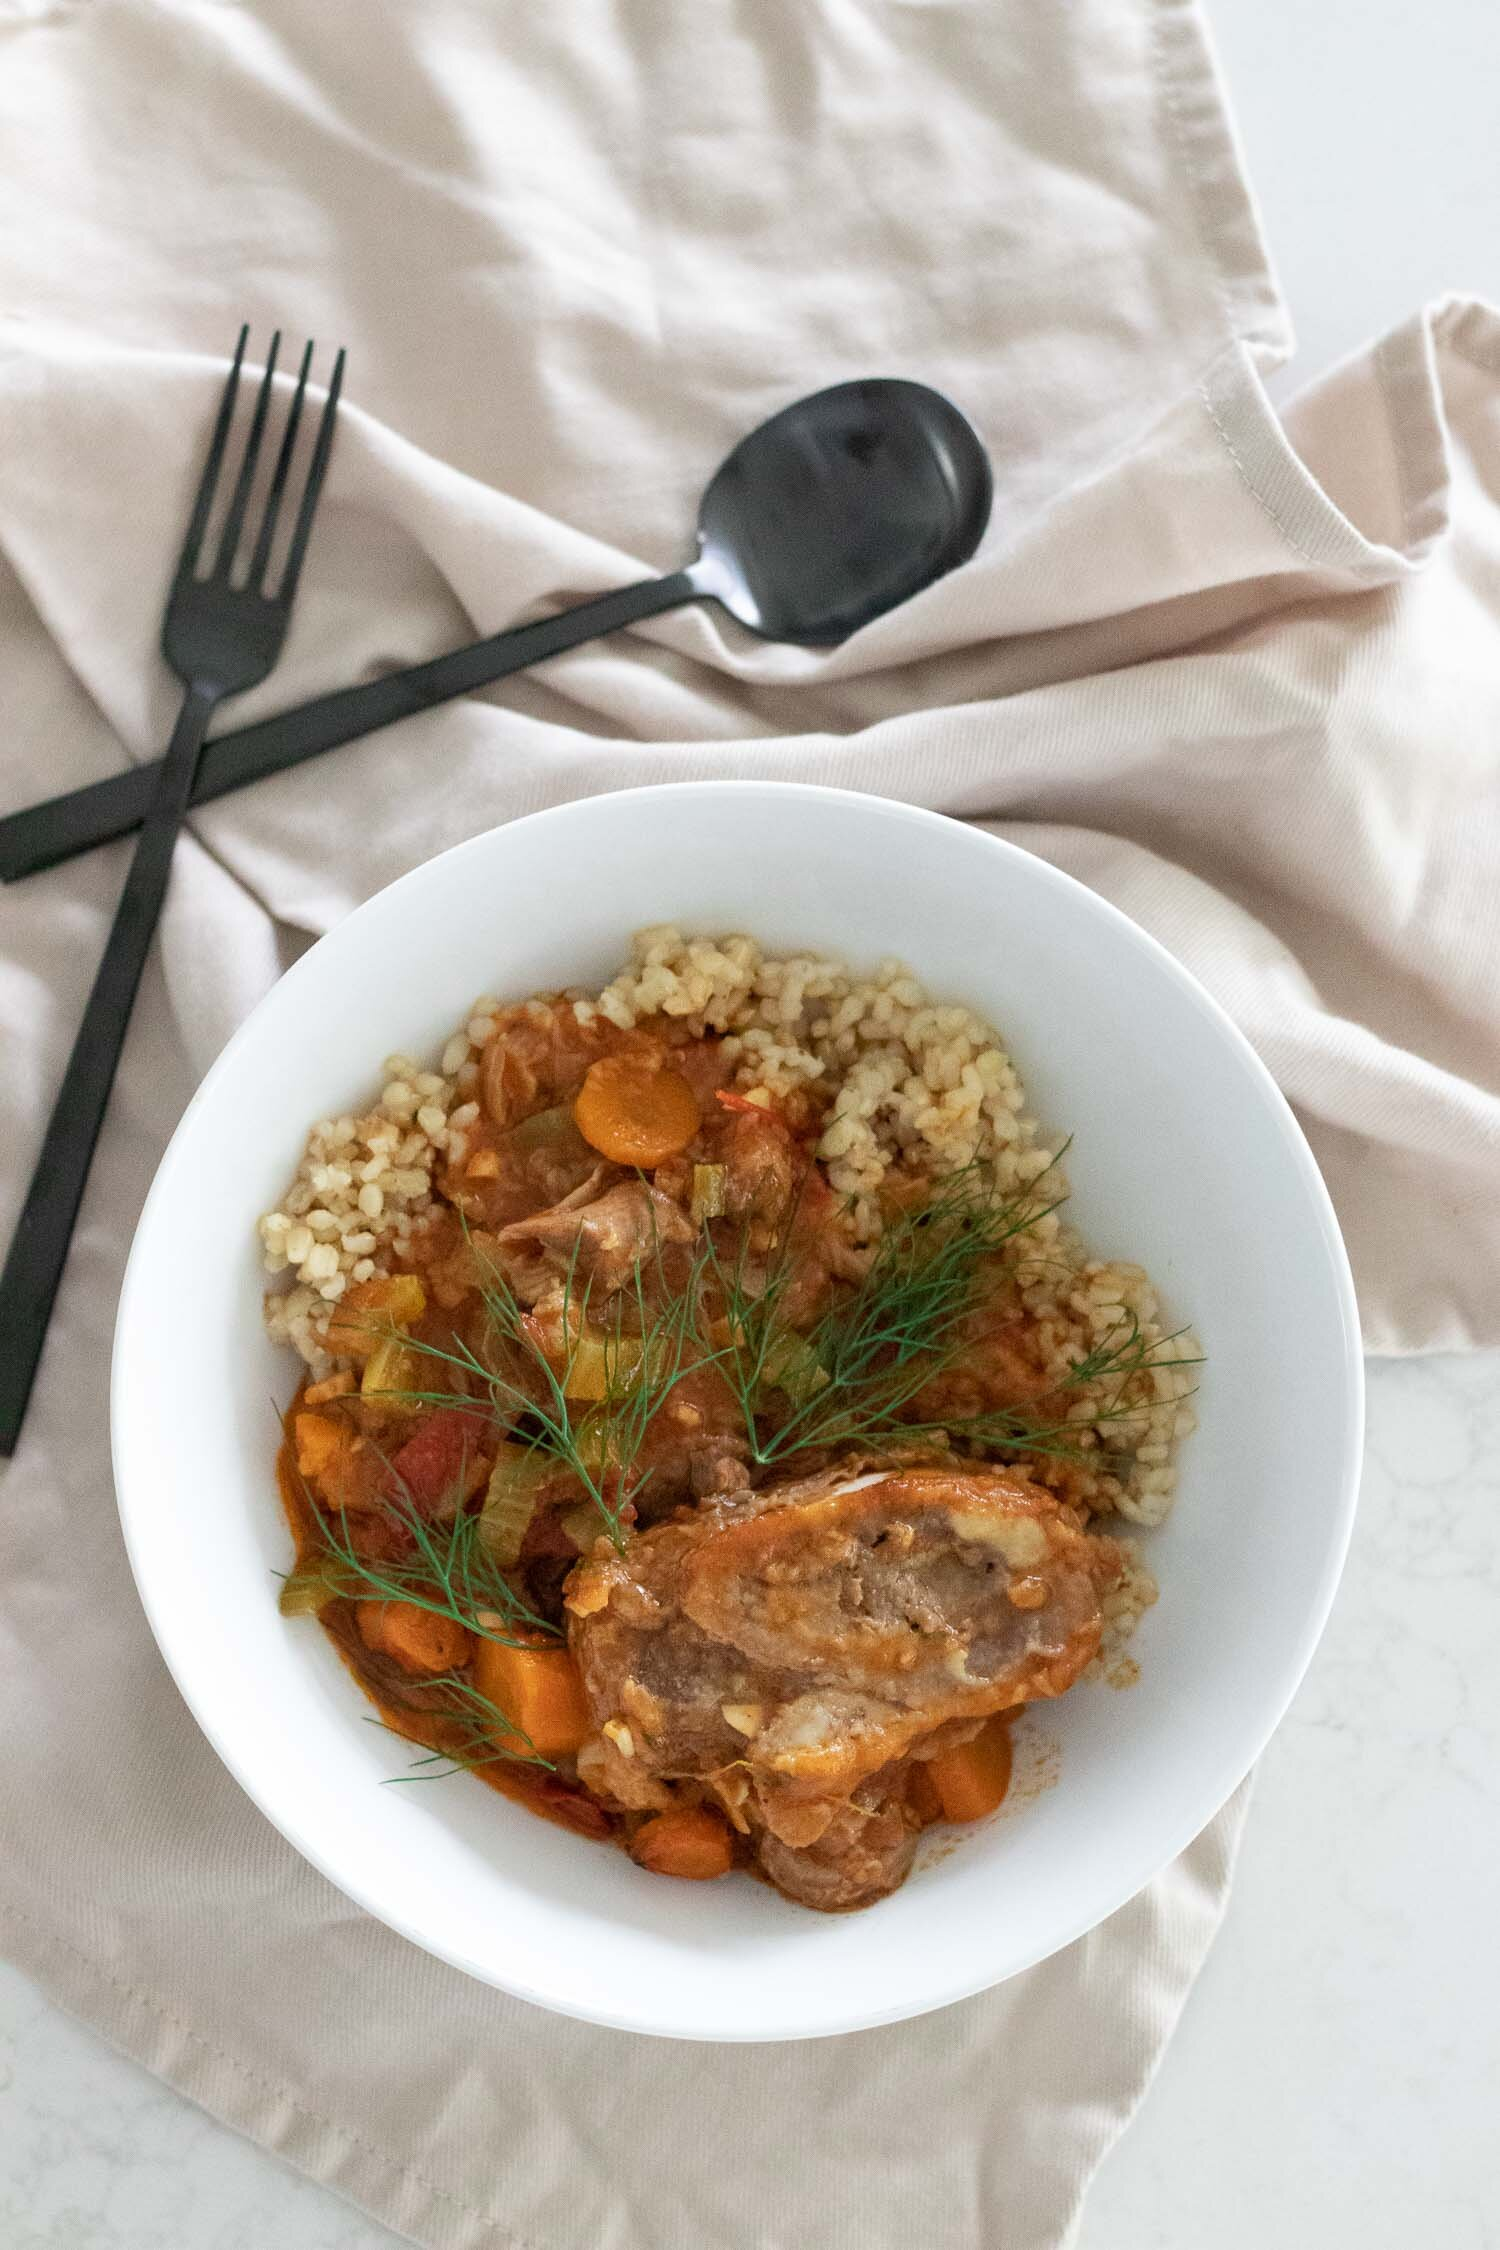 veronica with love - osso buco-2.jpg